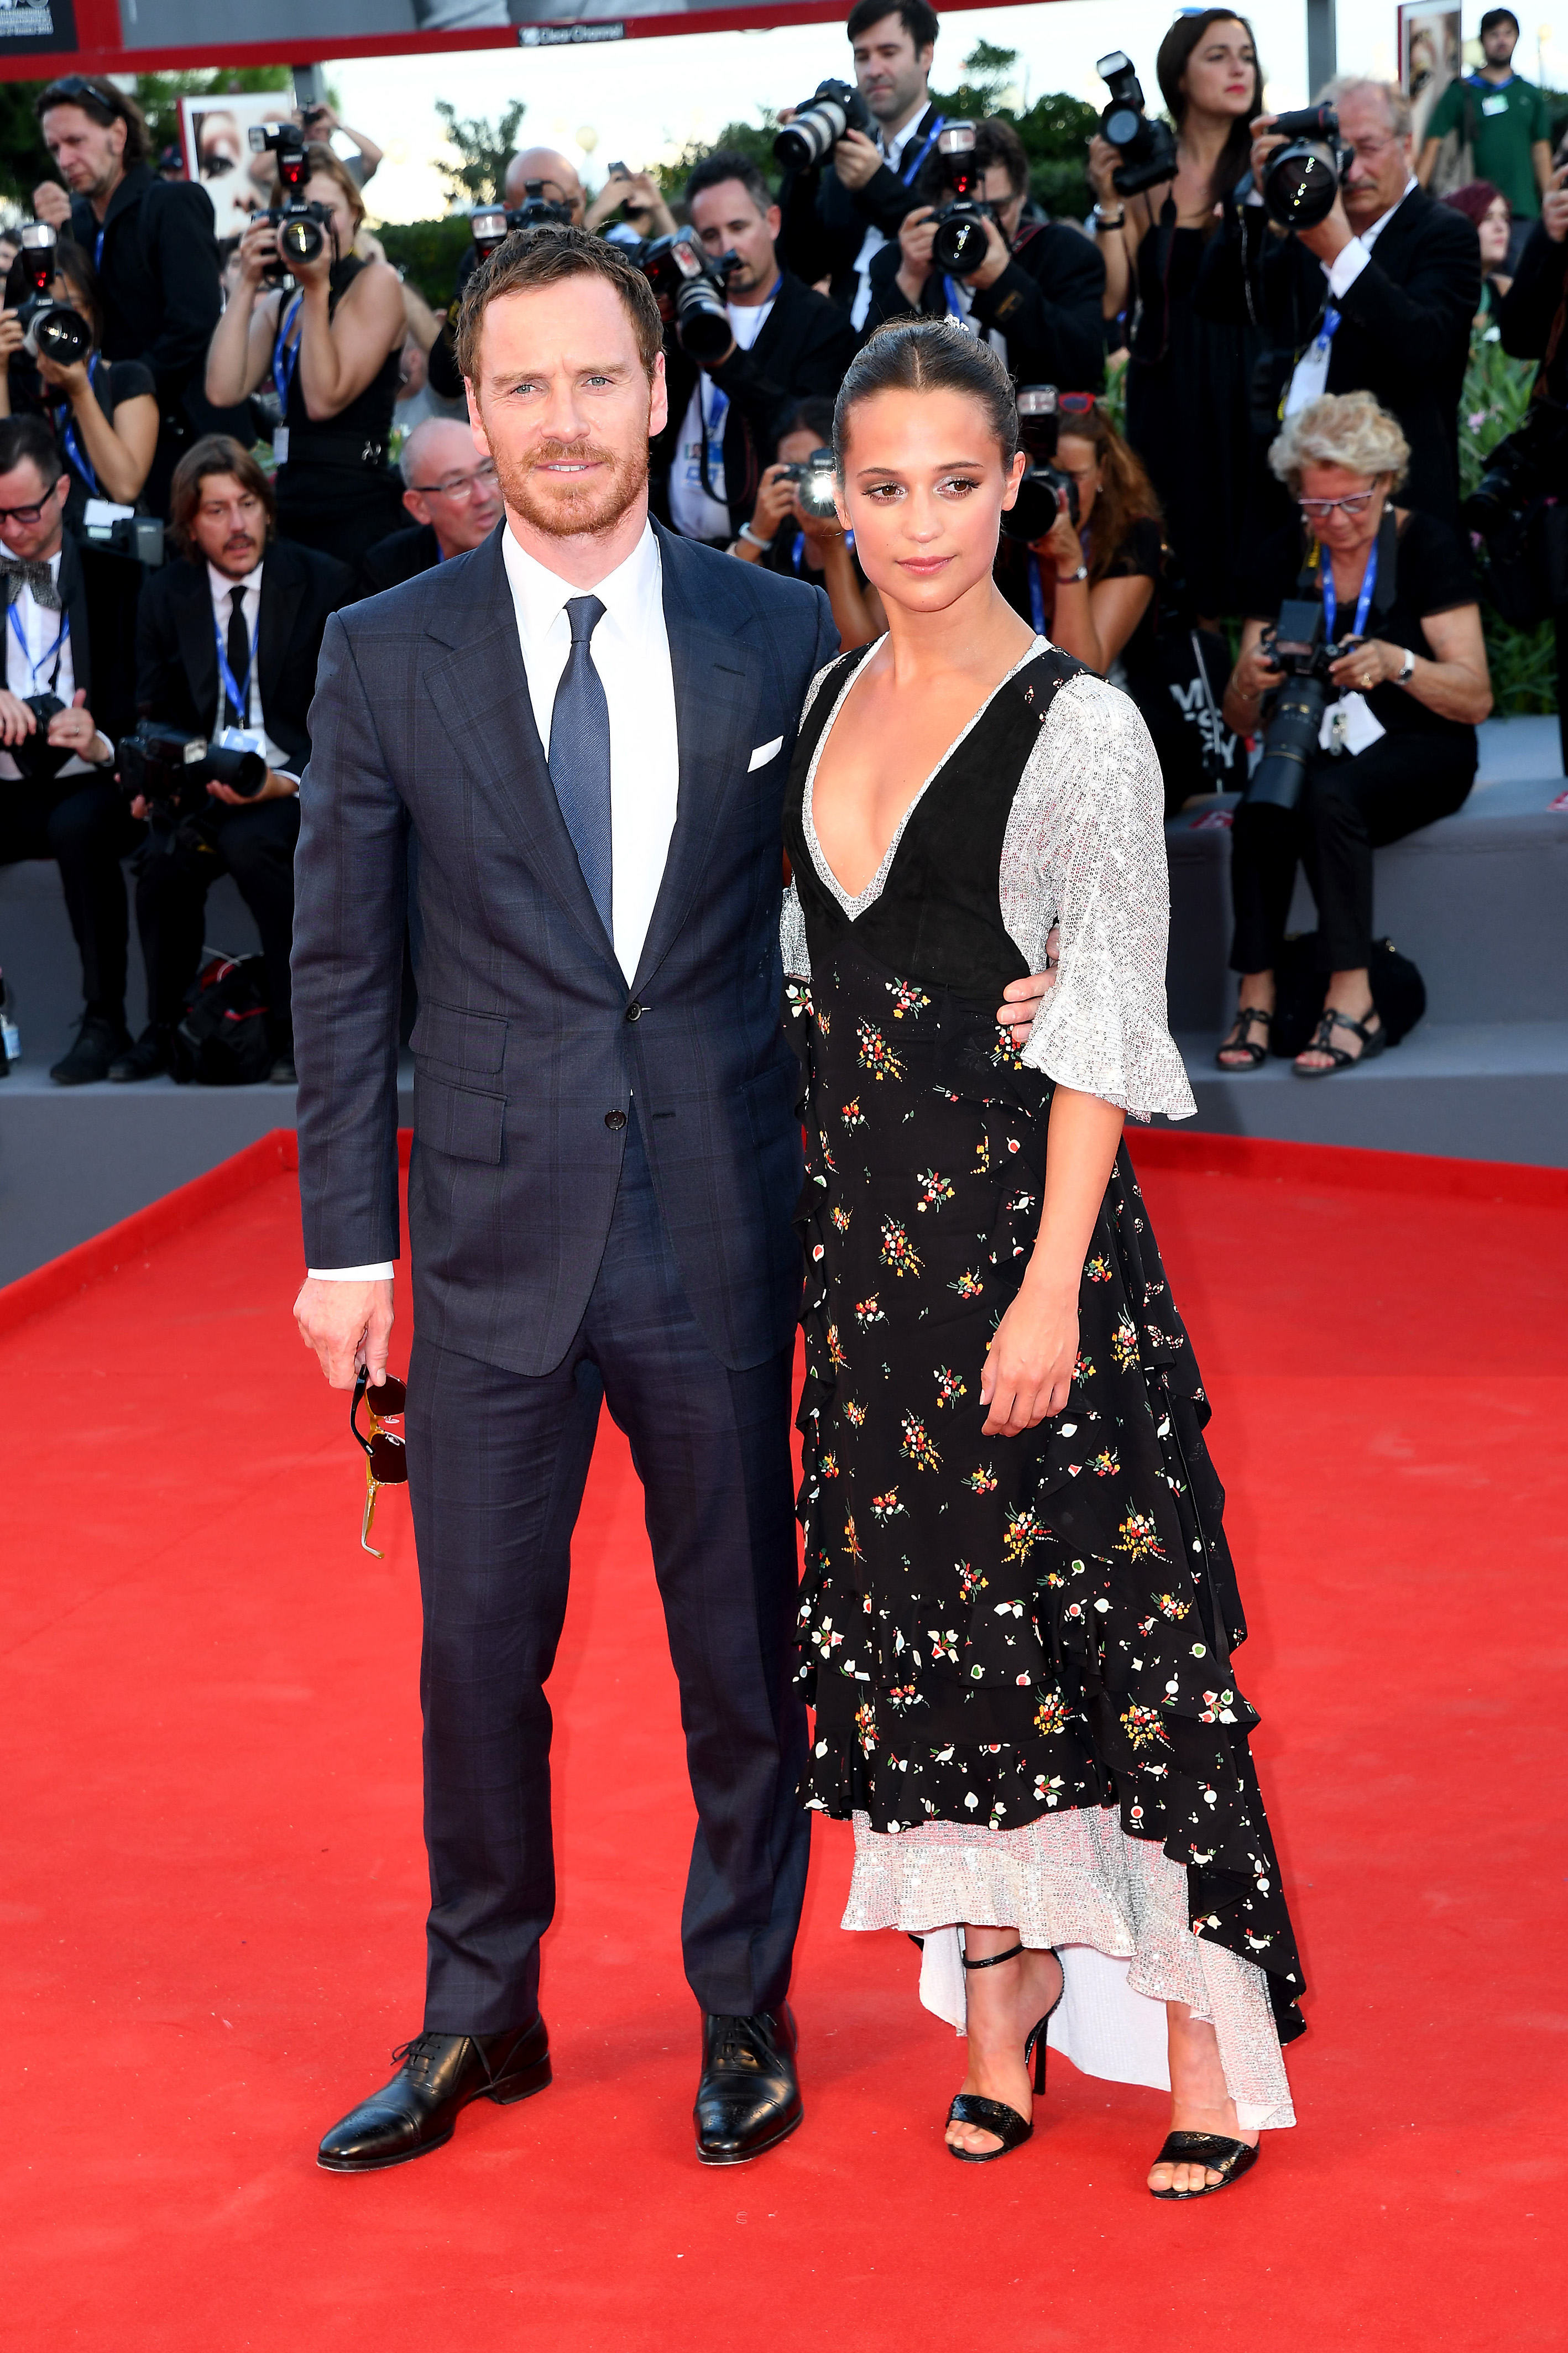 Michael Fassbender and Alicia Vikander go red carpet official